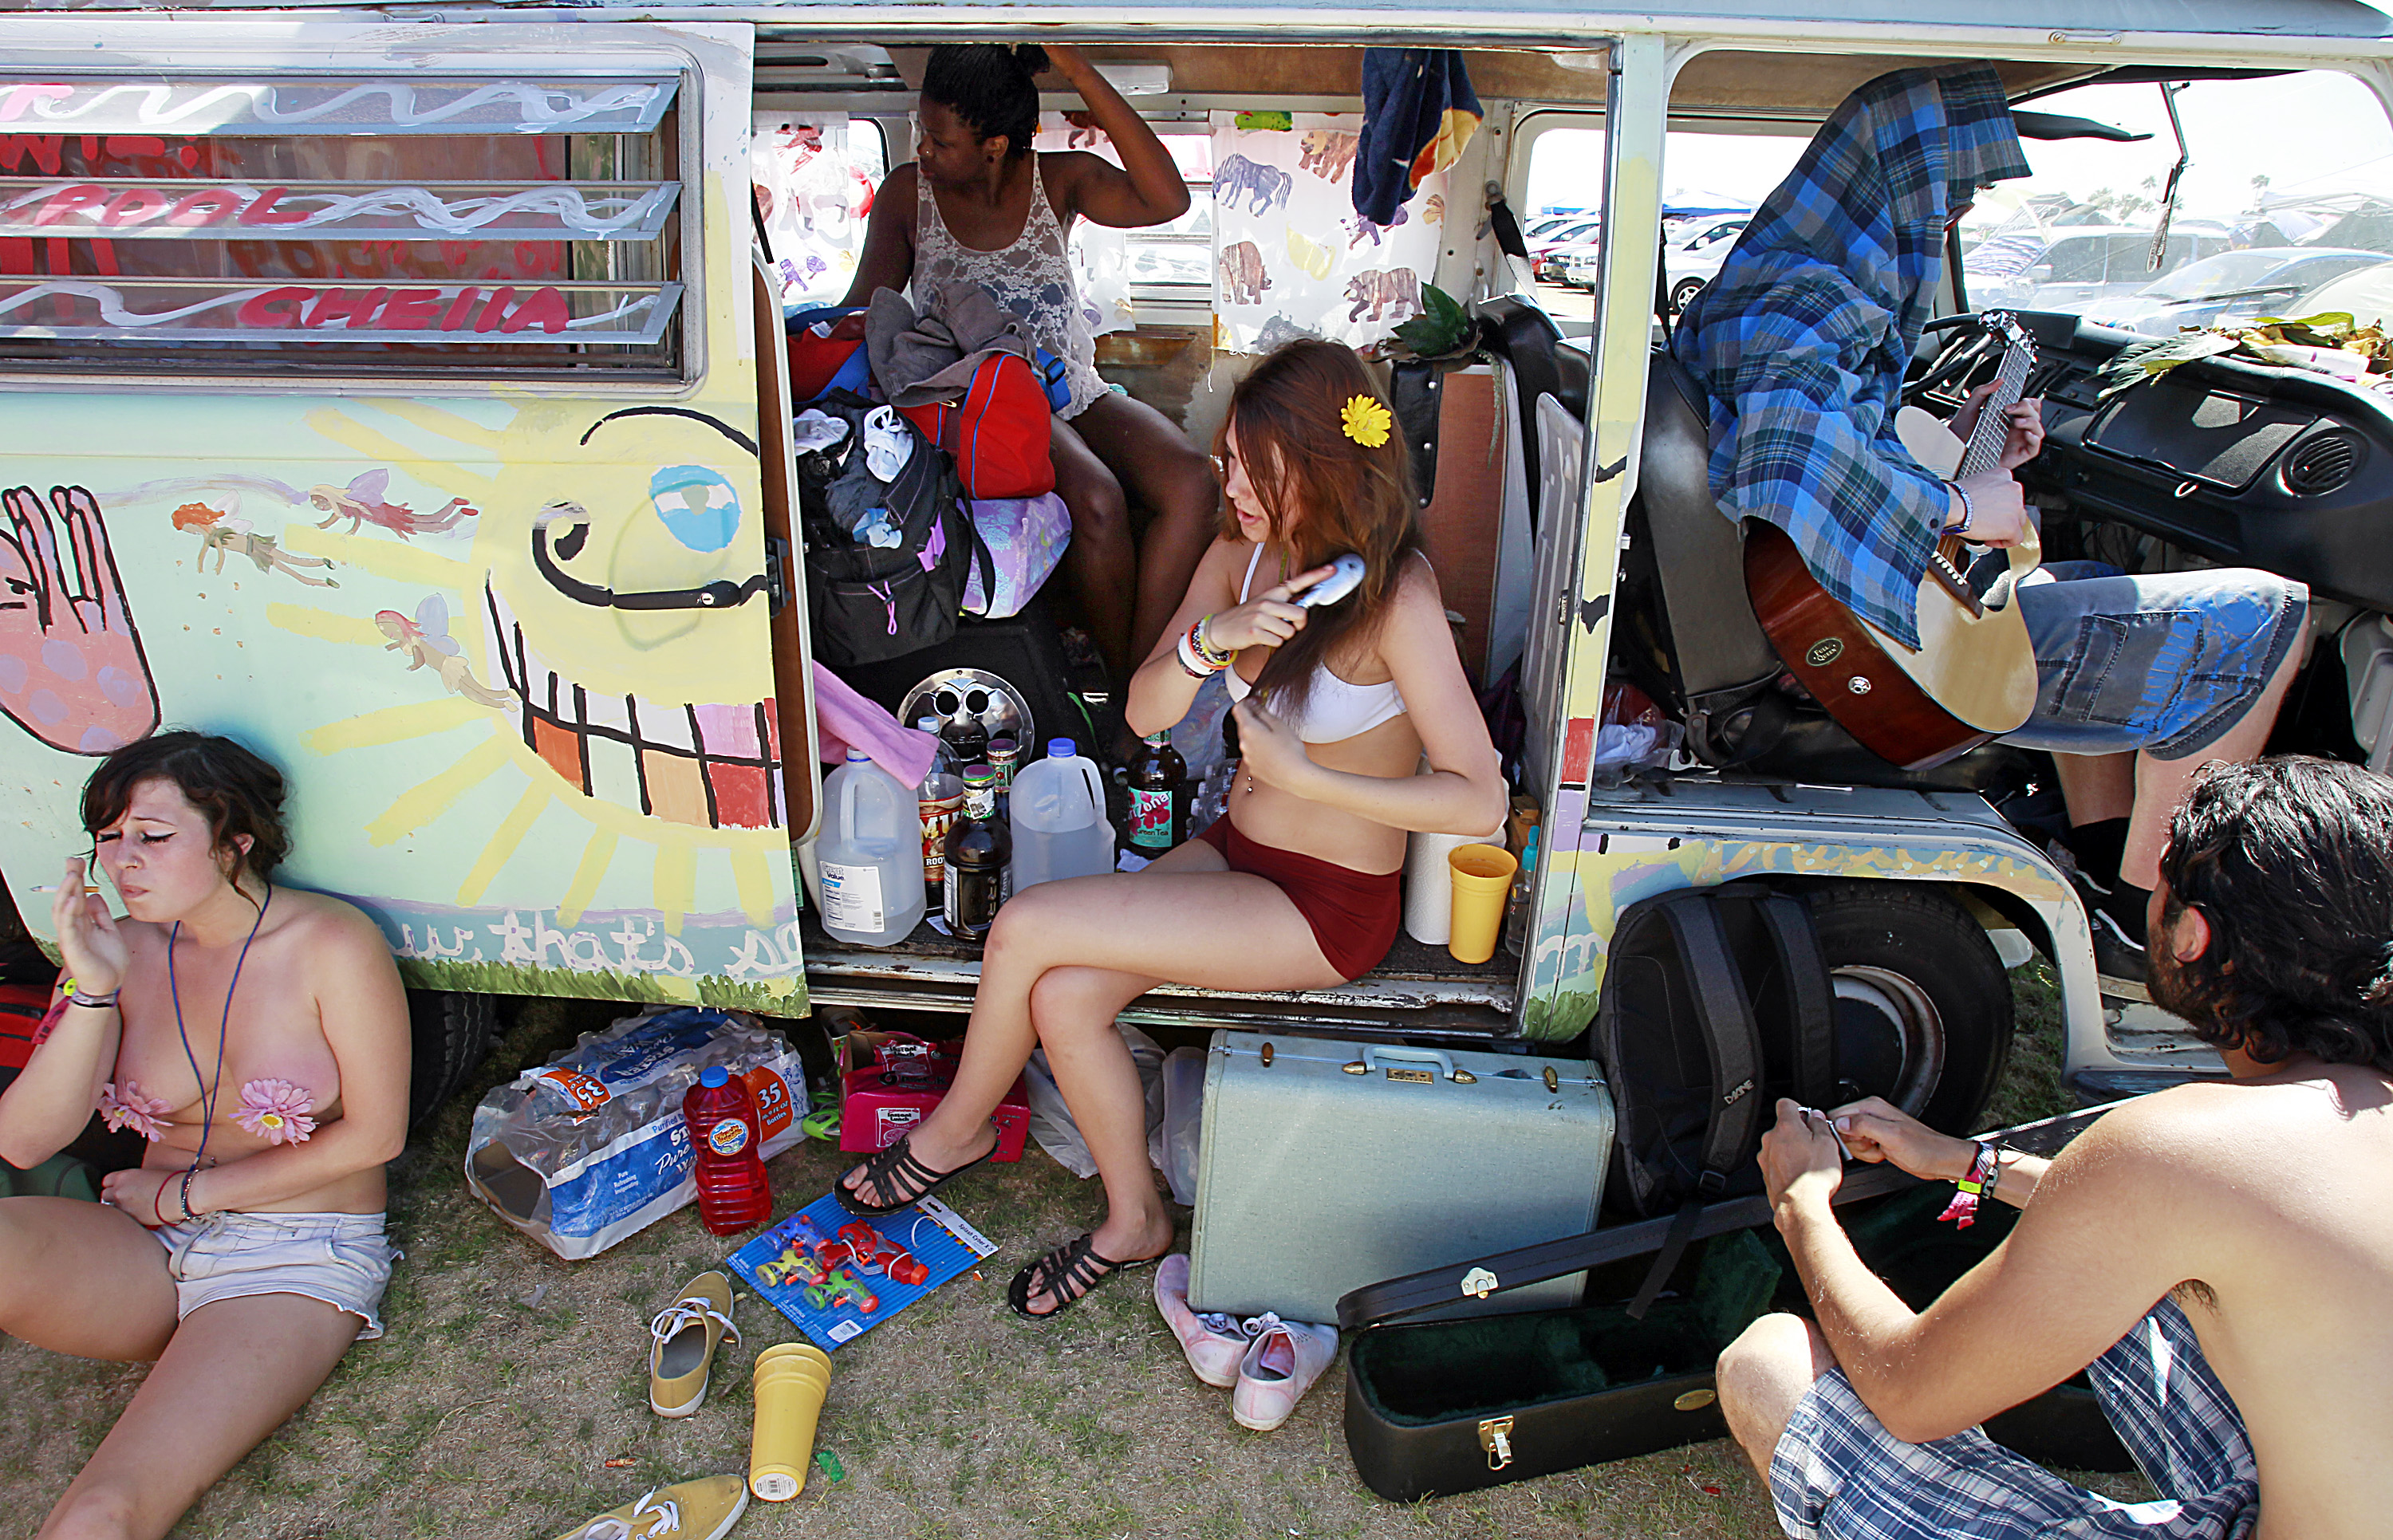 A group of festivalgoers chill out at an onsite campground Sunday, April 17, 2011, at the Coachella